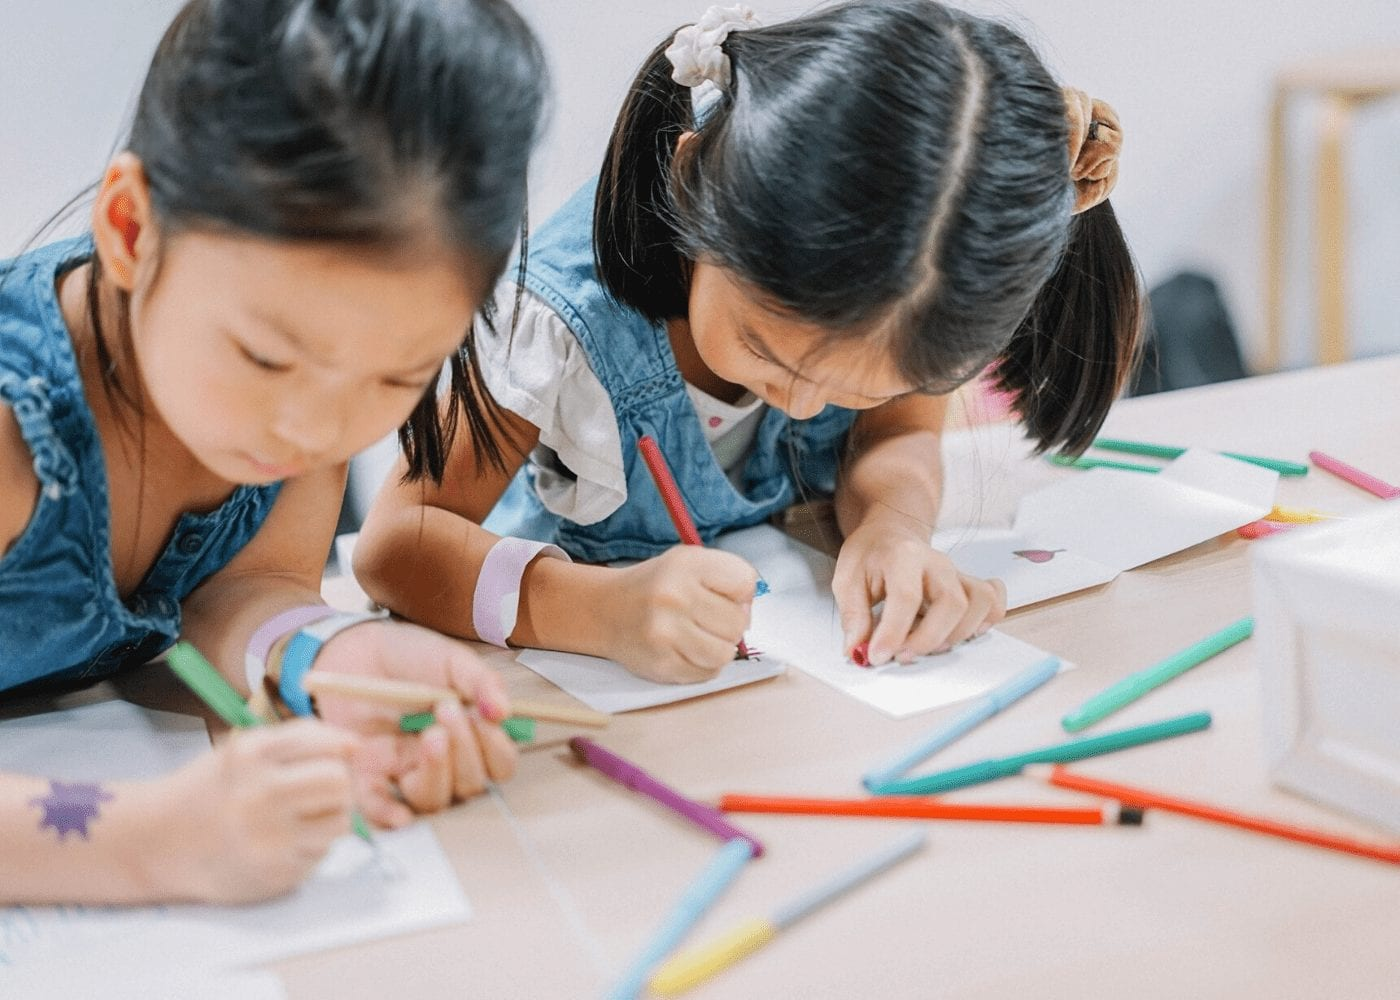 kids colouring playeum | Annual memberships in Singapore worth getting